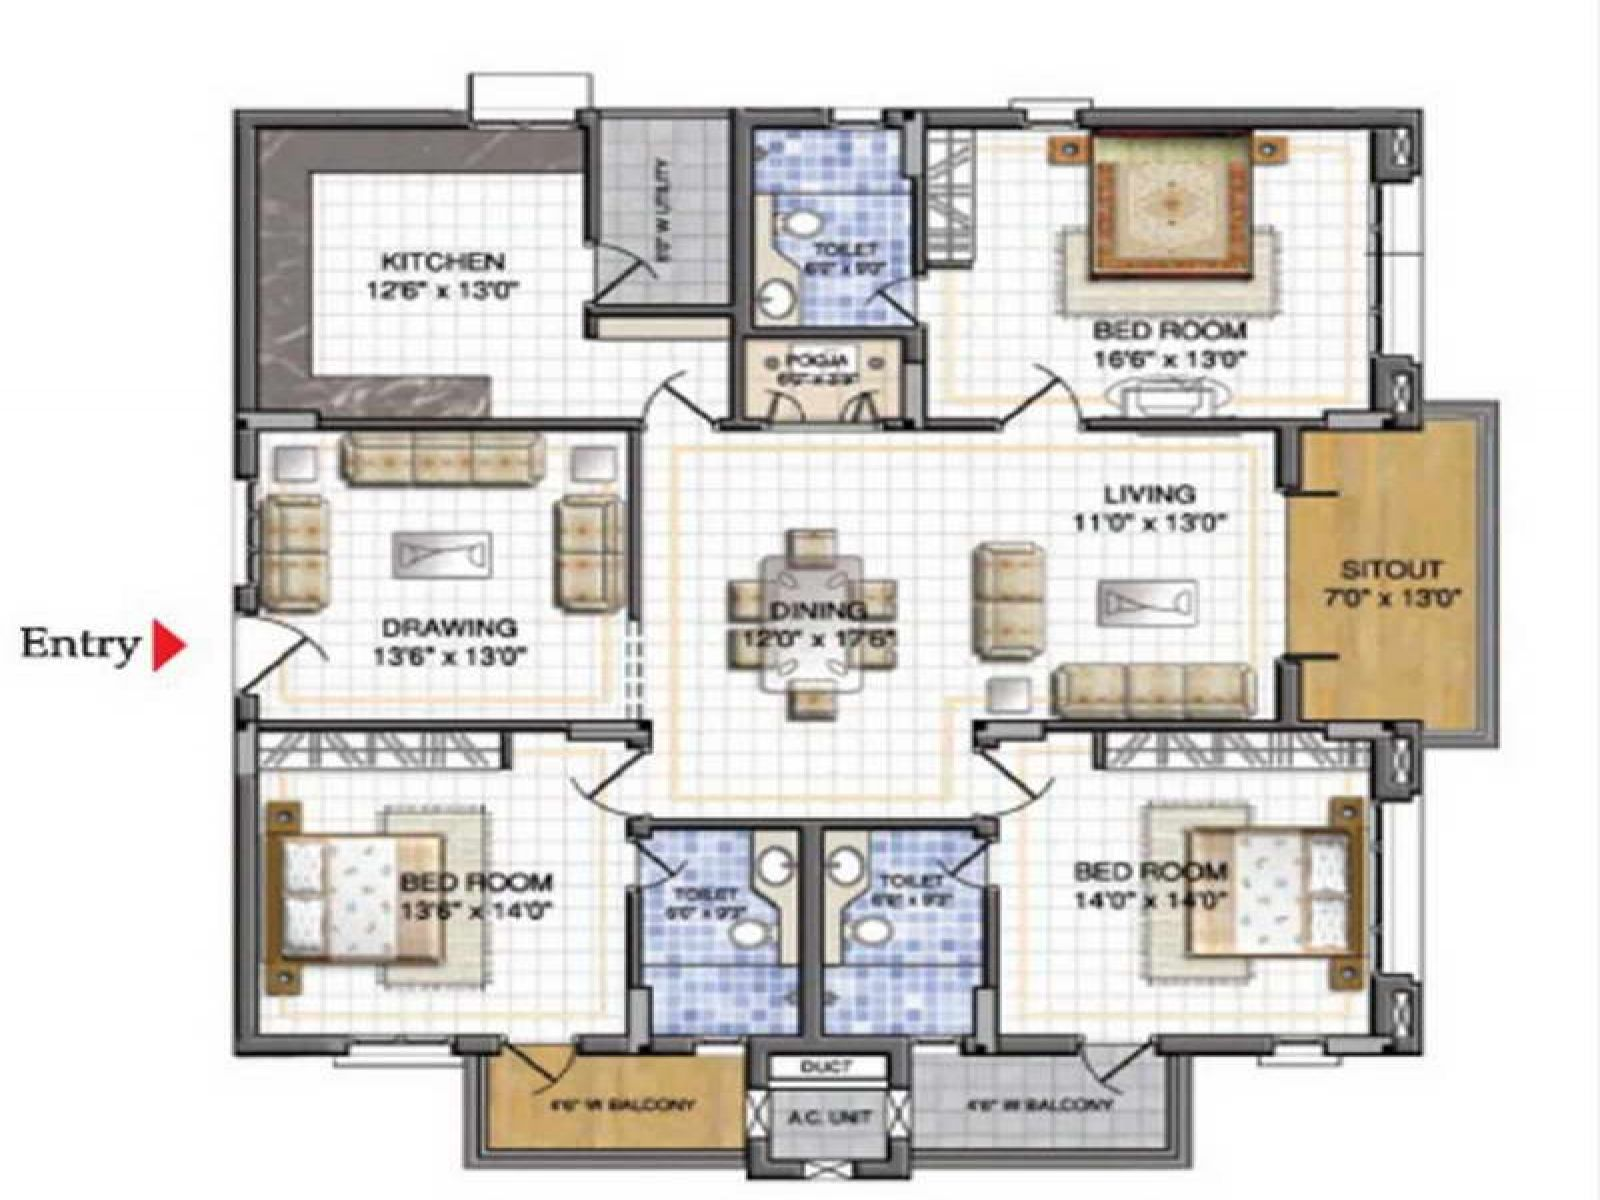 Sweet home 3d plans google search house designs pinterest layout online house plans House plan sketch design